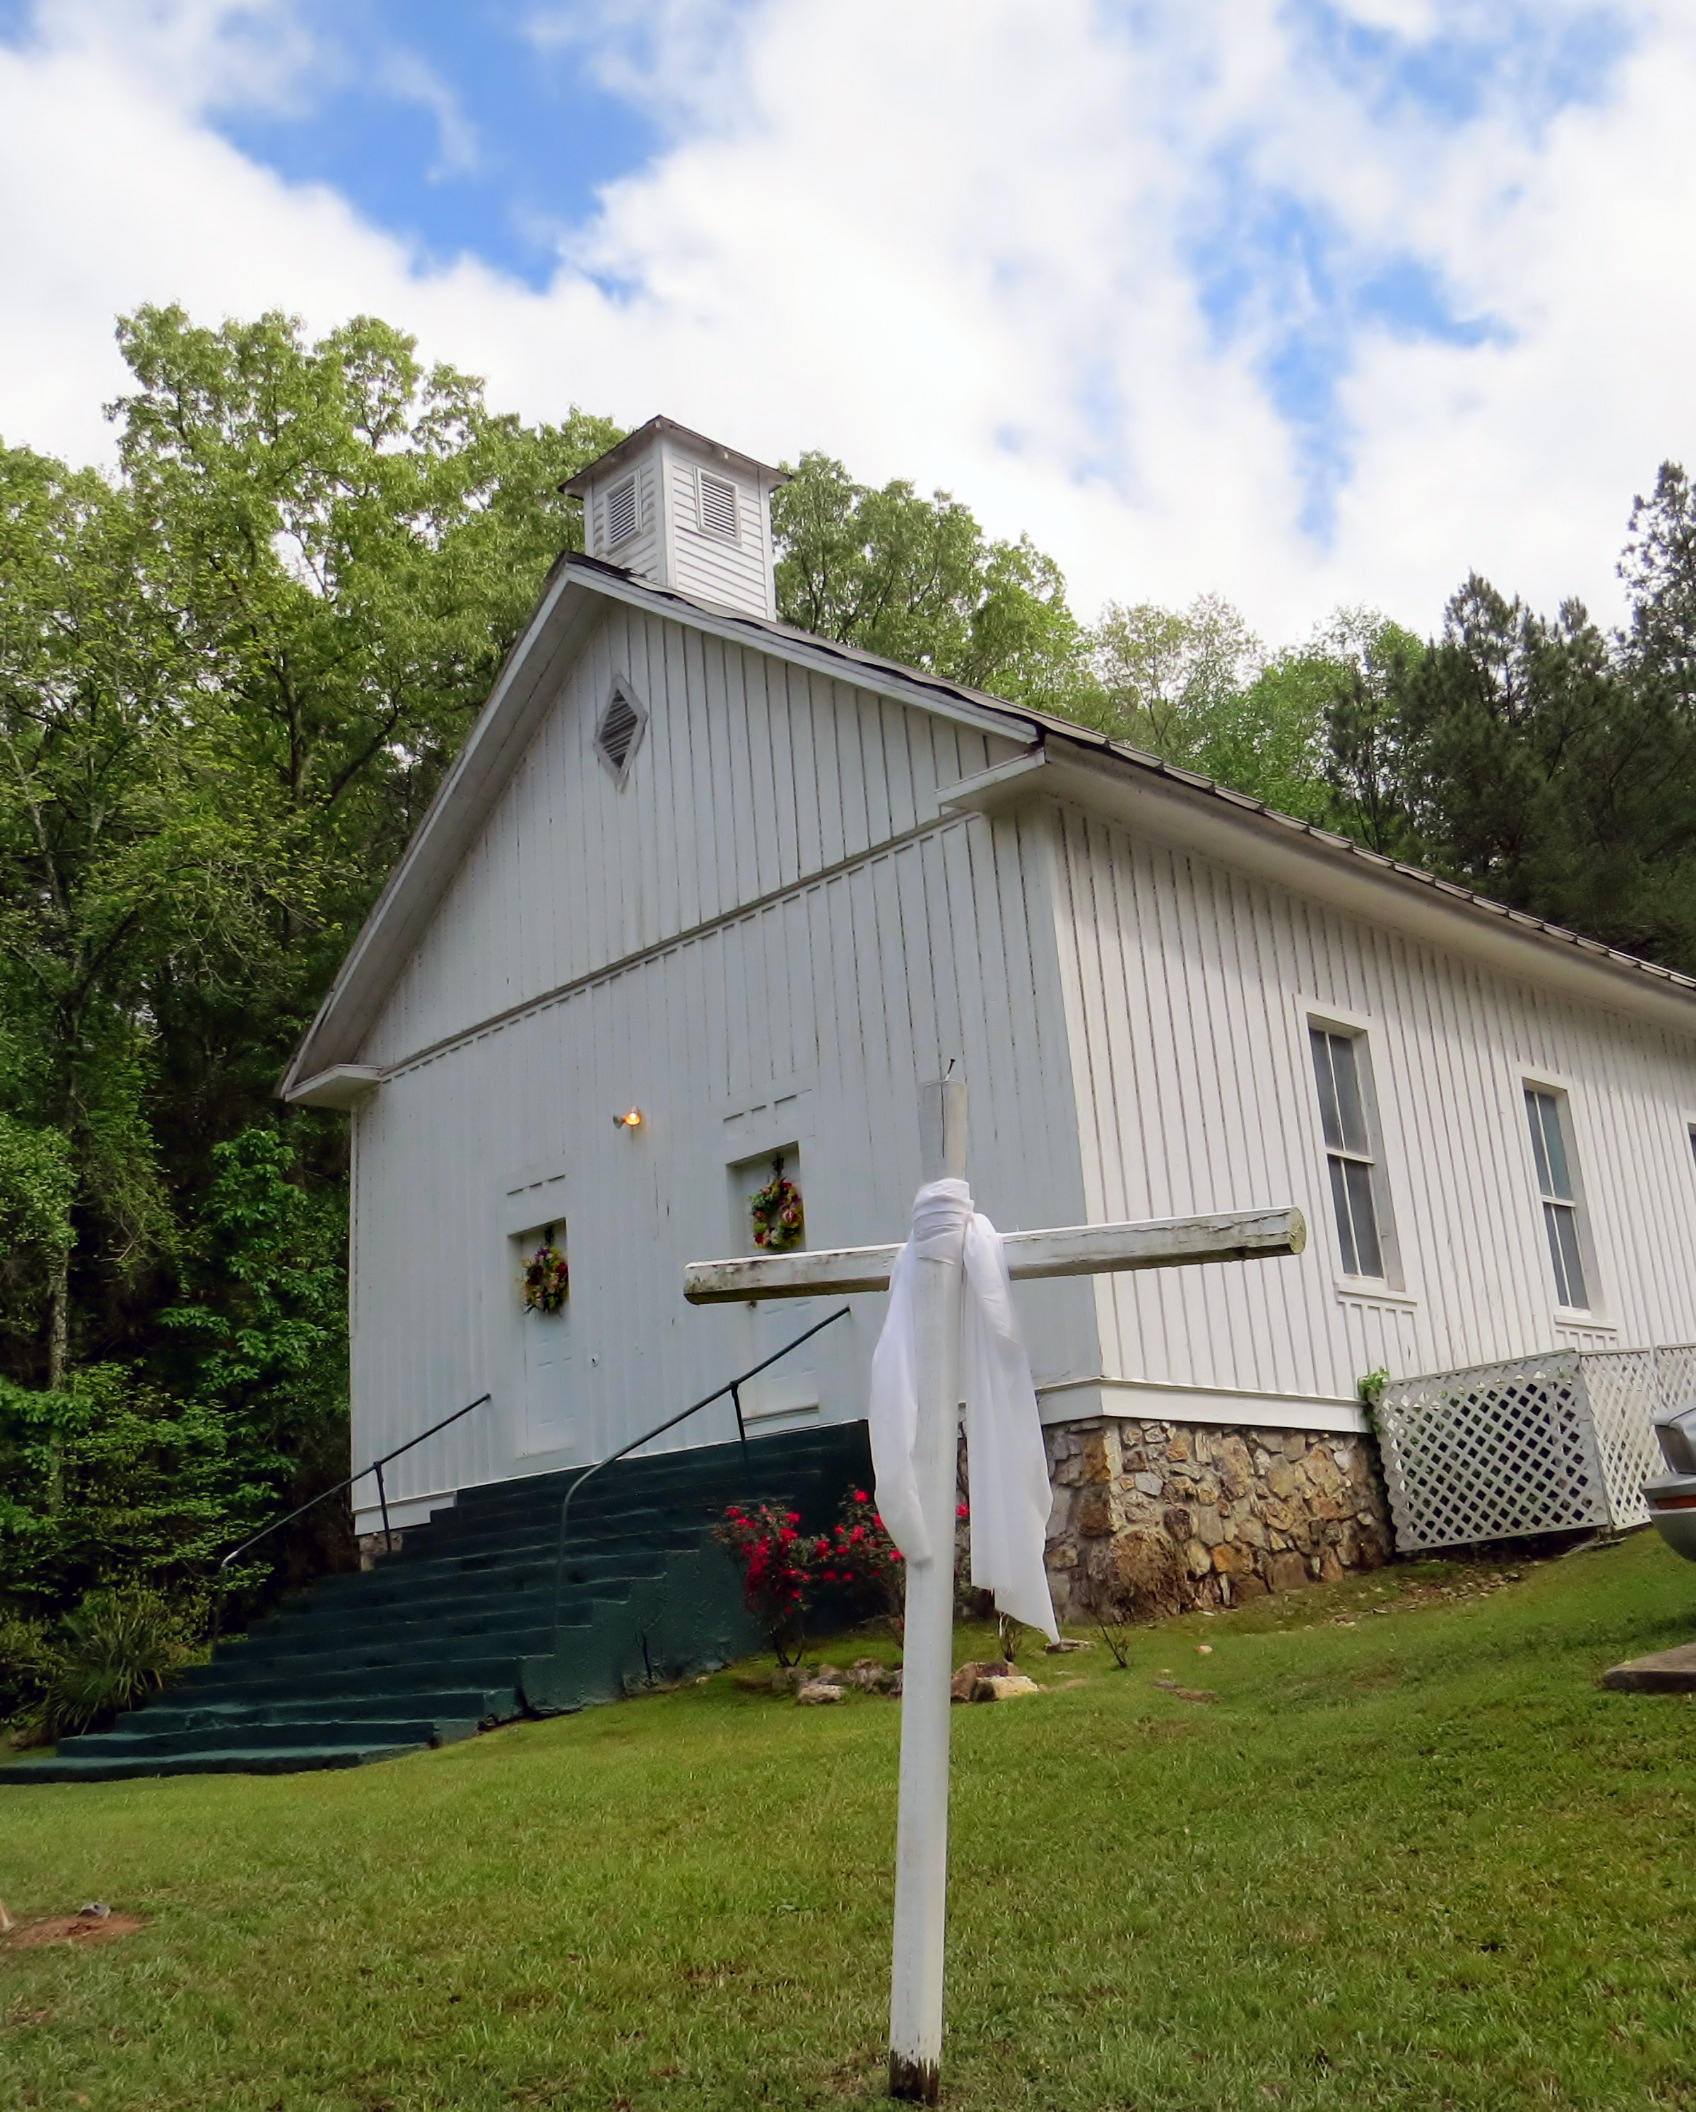 Chubb Chapel United Methodist Church was founded in 1870 by the Chubb family and other black residents of Chubbtown, Georgia. Before and during the Civil War, the Chubbs were free blacks, something rare in the rural South at that time. Photo by Sam Hodges, UMNS.